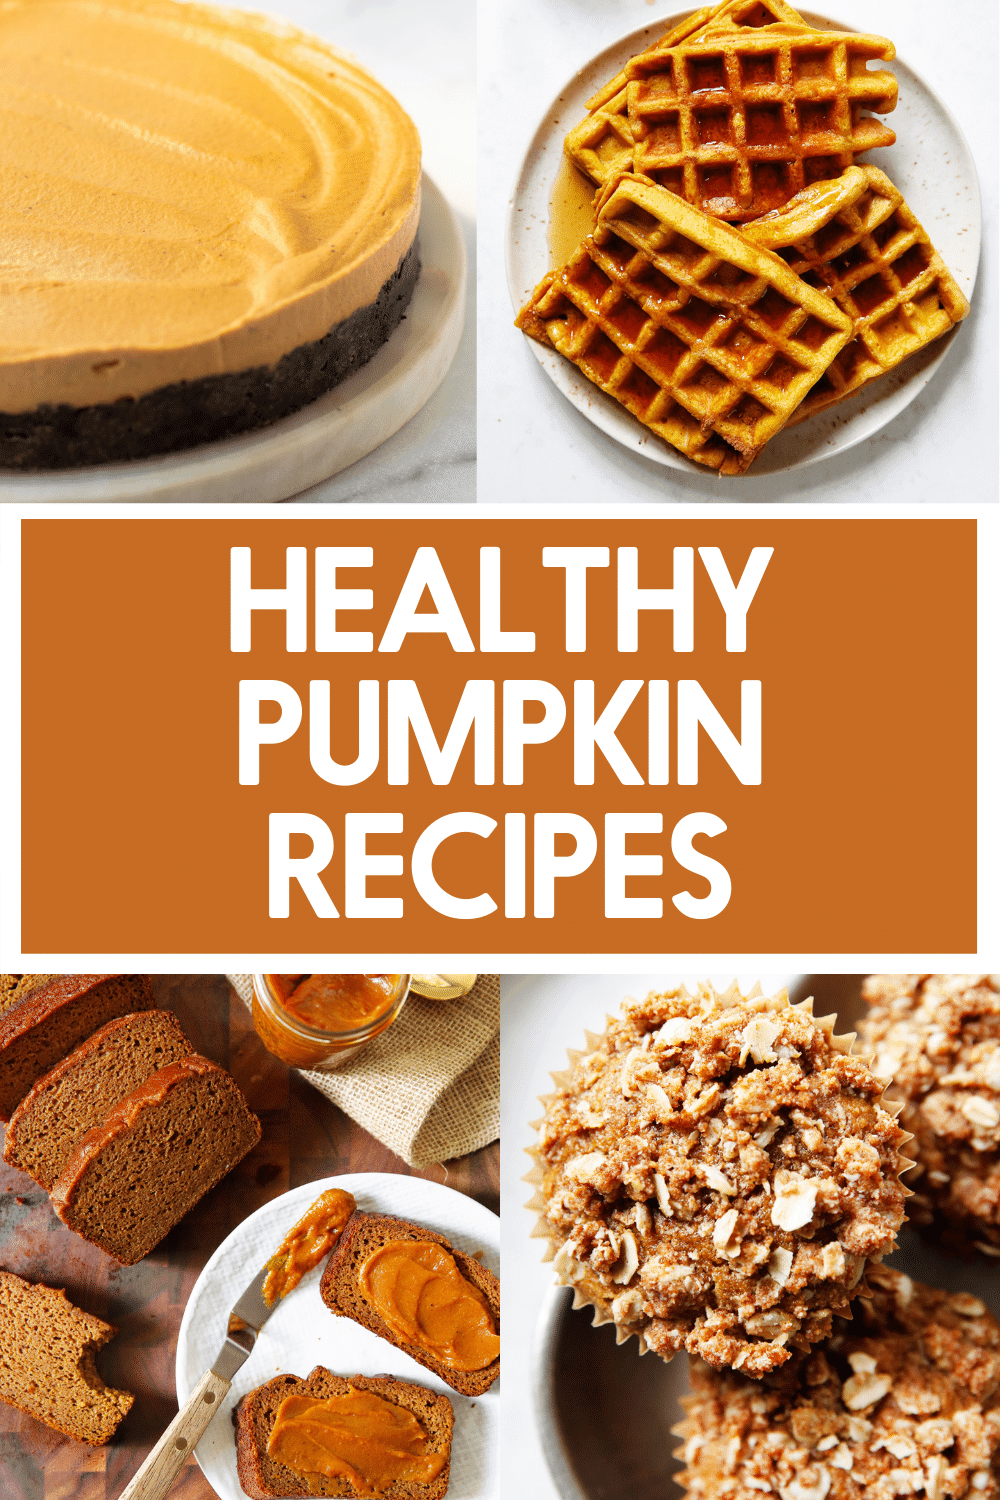 Healthy Pumpkin Recipe